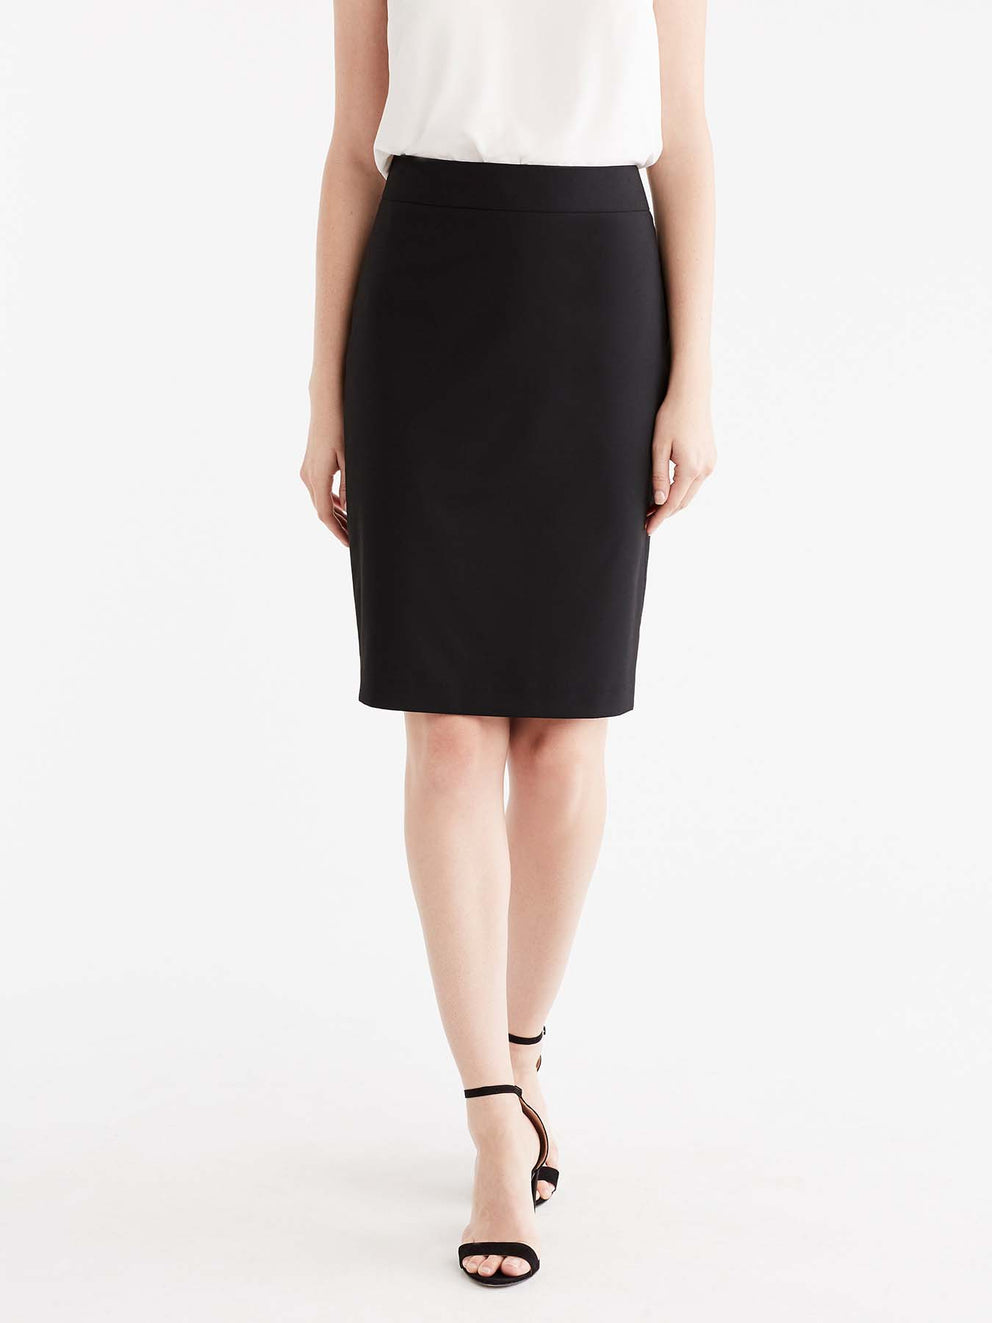 The Jones New York Washable Pencil Skirt in color Black - Image Position 1